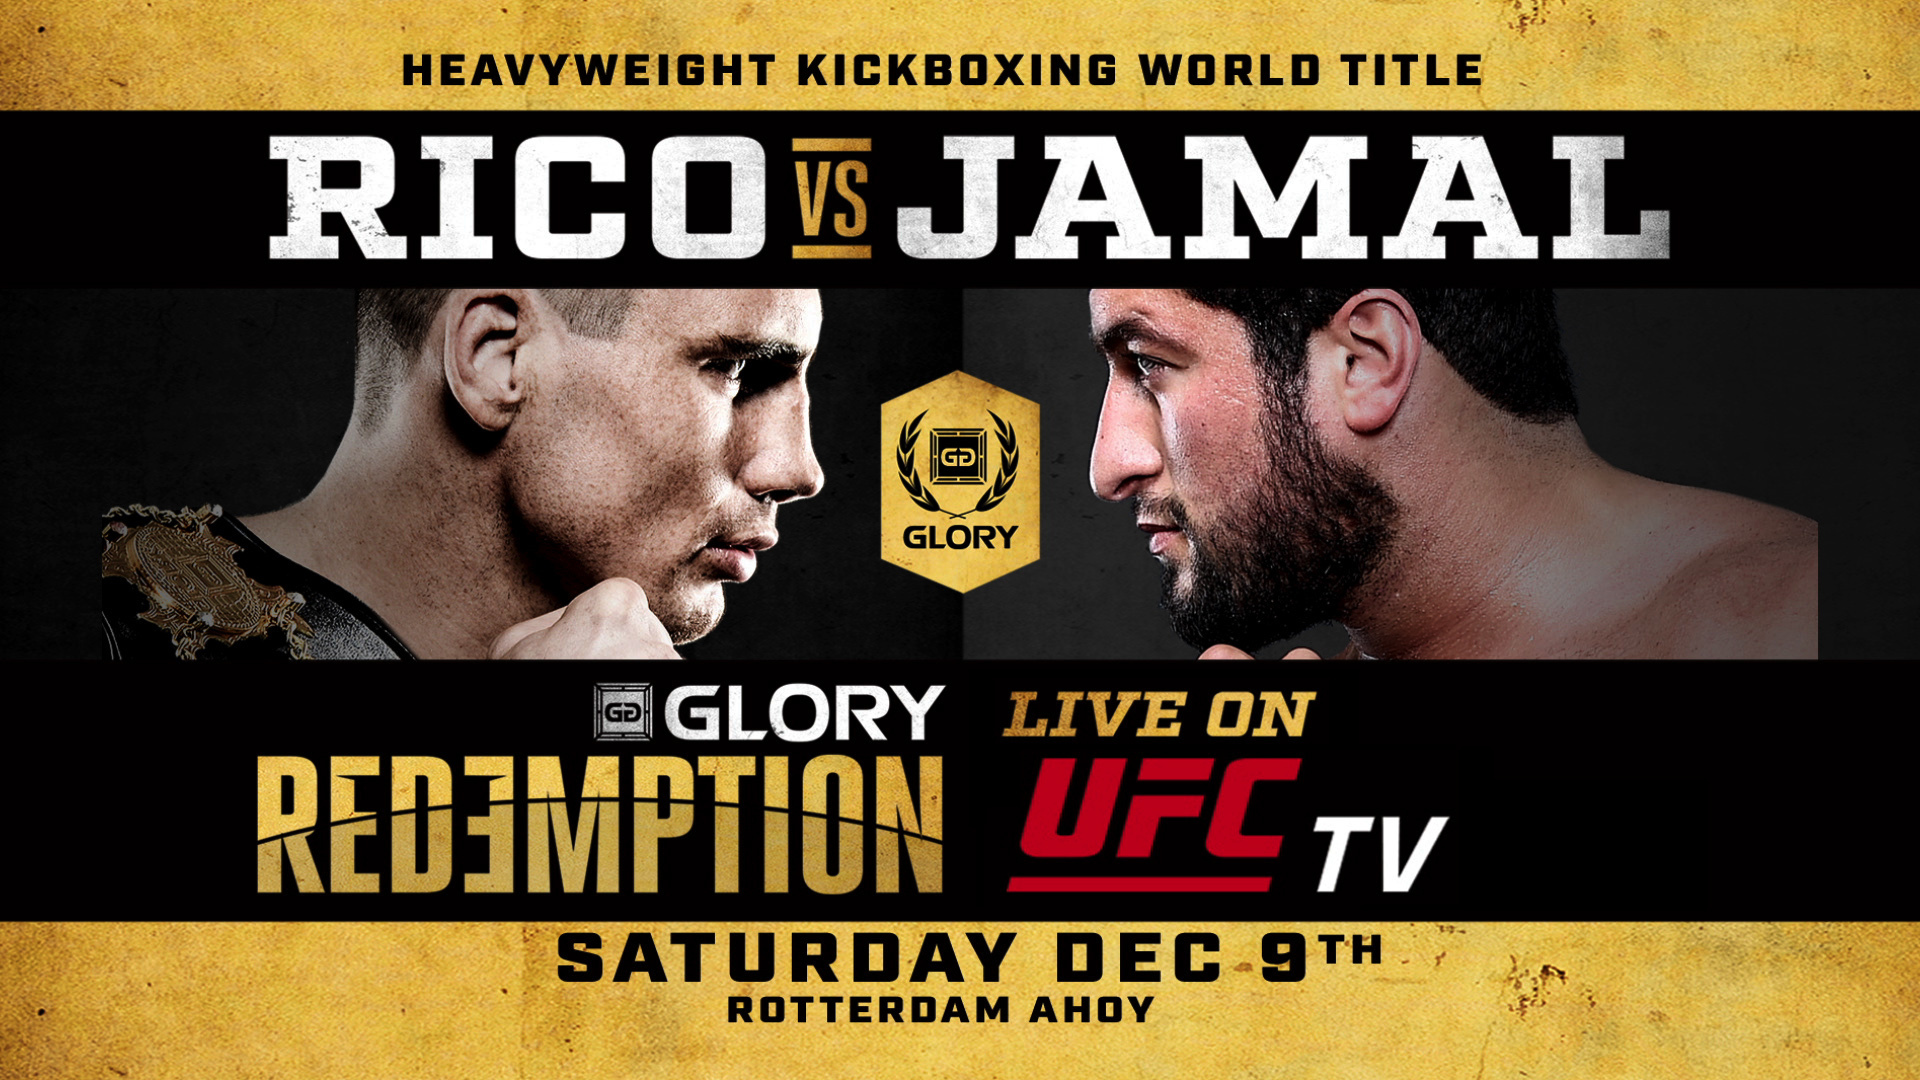 GLORY Signs Agreement with Exclusive Digital Partner UFC.TV to Stream GLORY: REDEMPTION Pay-Per-View Special Event